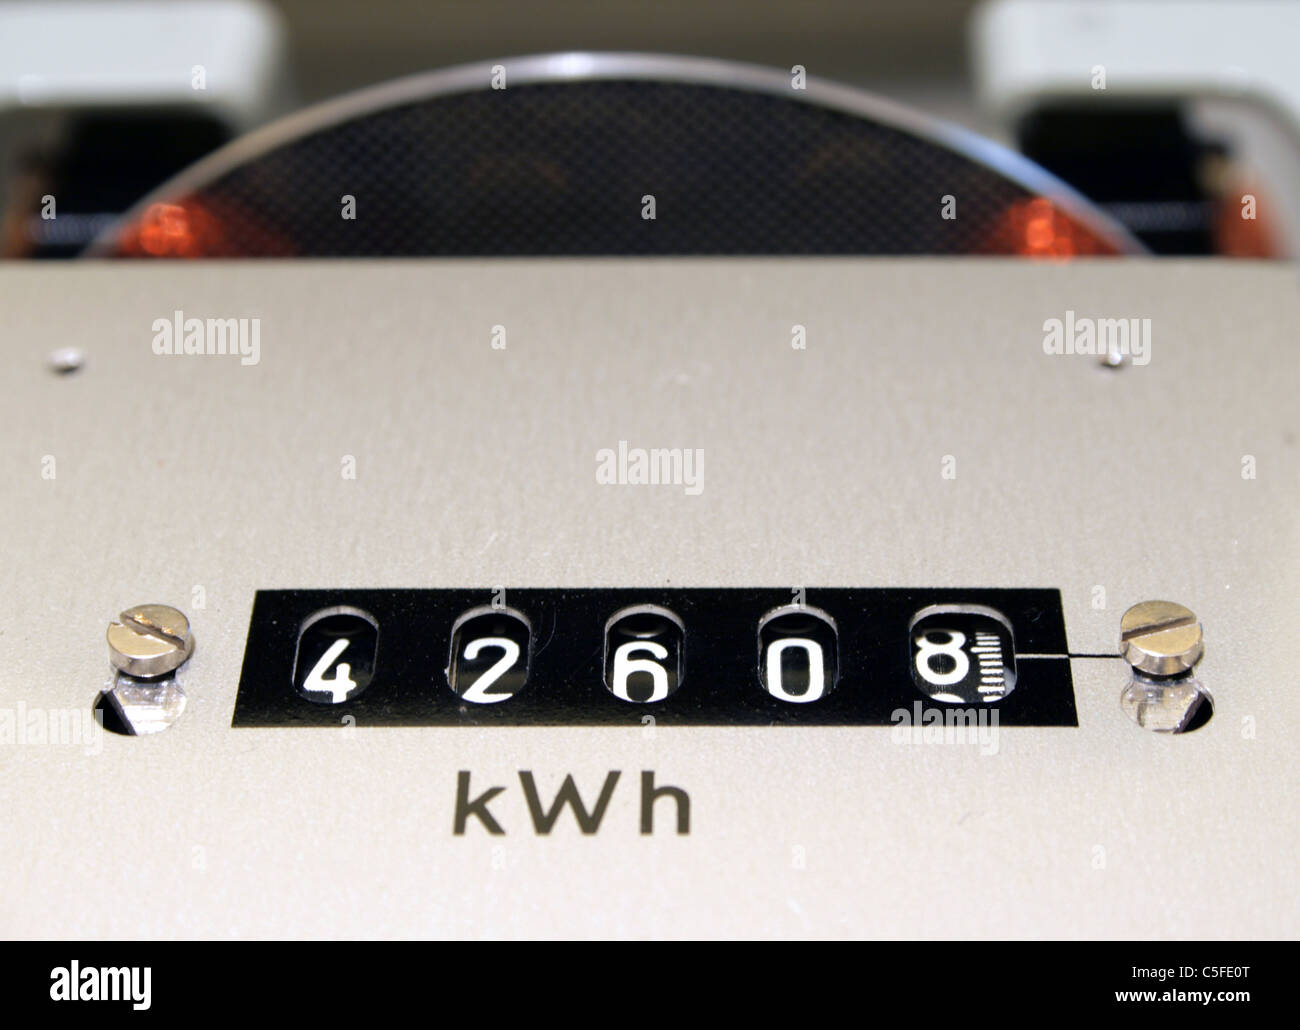 KWH counter close up - Stock Image